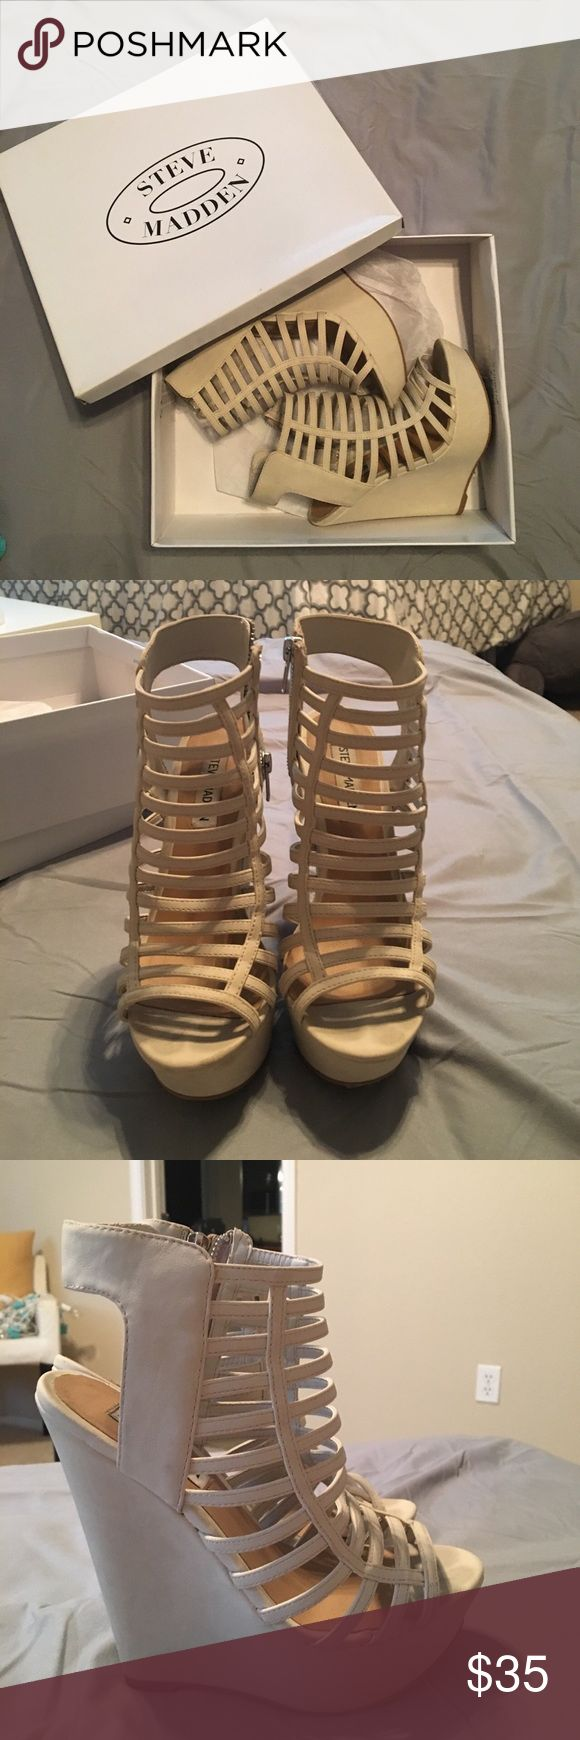 Steve Madden Cut Out Wedges Steve Madden cream colored cut-out heels. Good condition! Pairs great with any dress of jeans ✨Size: 7 ✨Fits: 6.5/7 ✨Make an offer!  ❣️24 hr shipping on all orders! Steve Madden Shoes Wedges